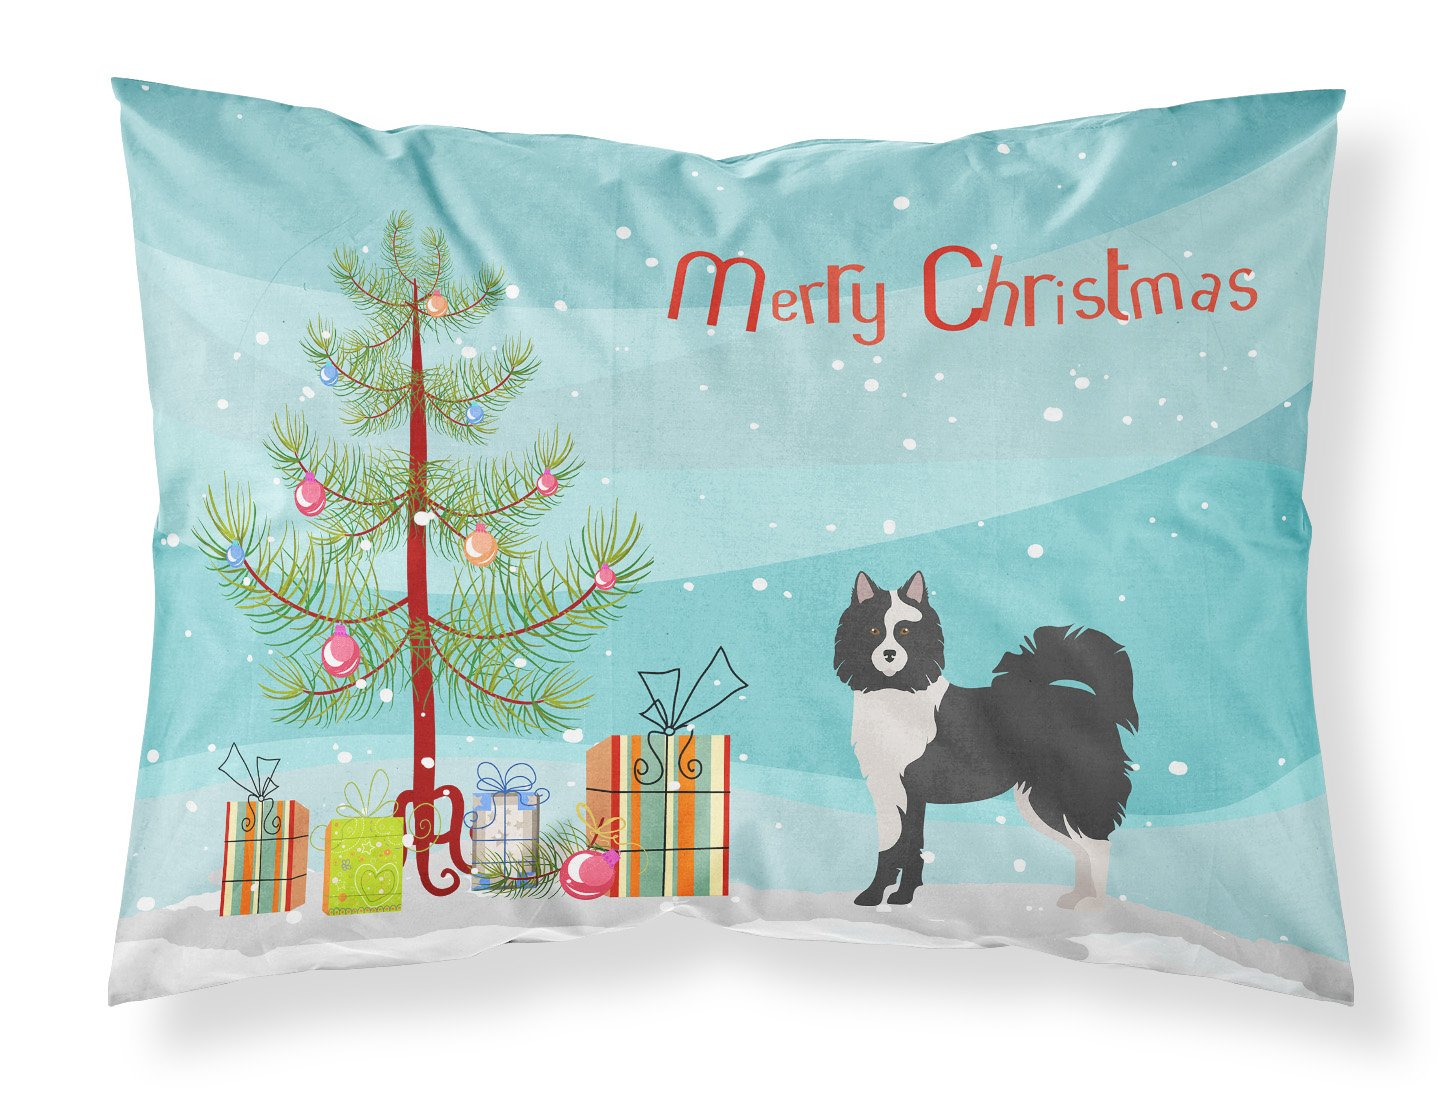 Black and White Elo dog Christmas Tree Fabric Standard Pillowcase CK3452PILLOWCASE by Caroline's Treasures